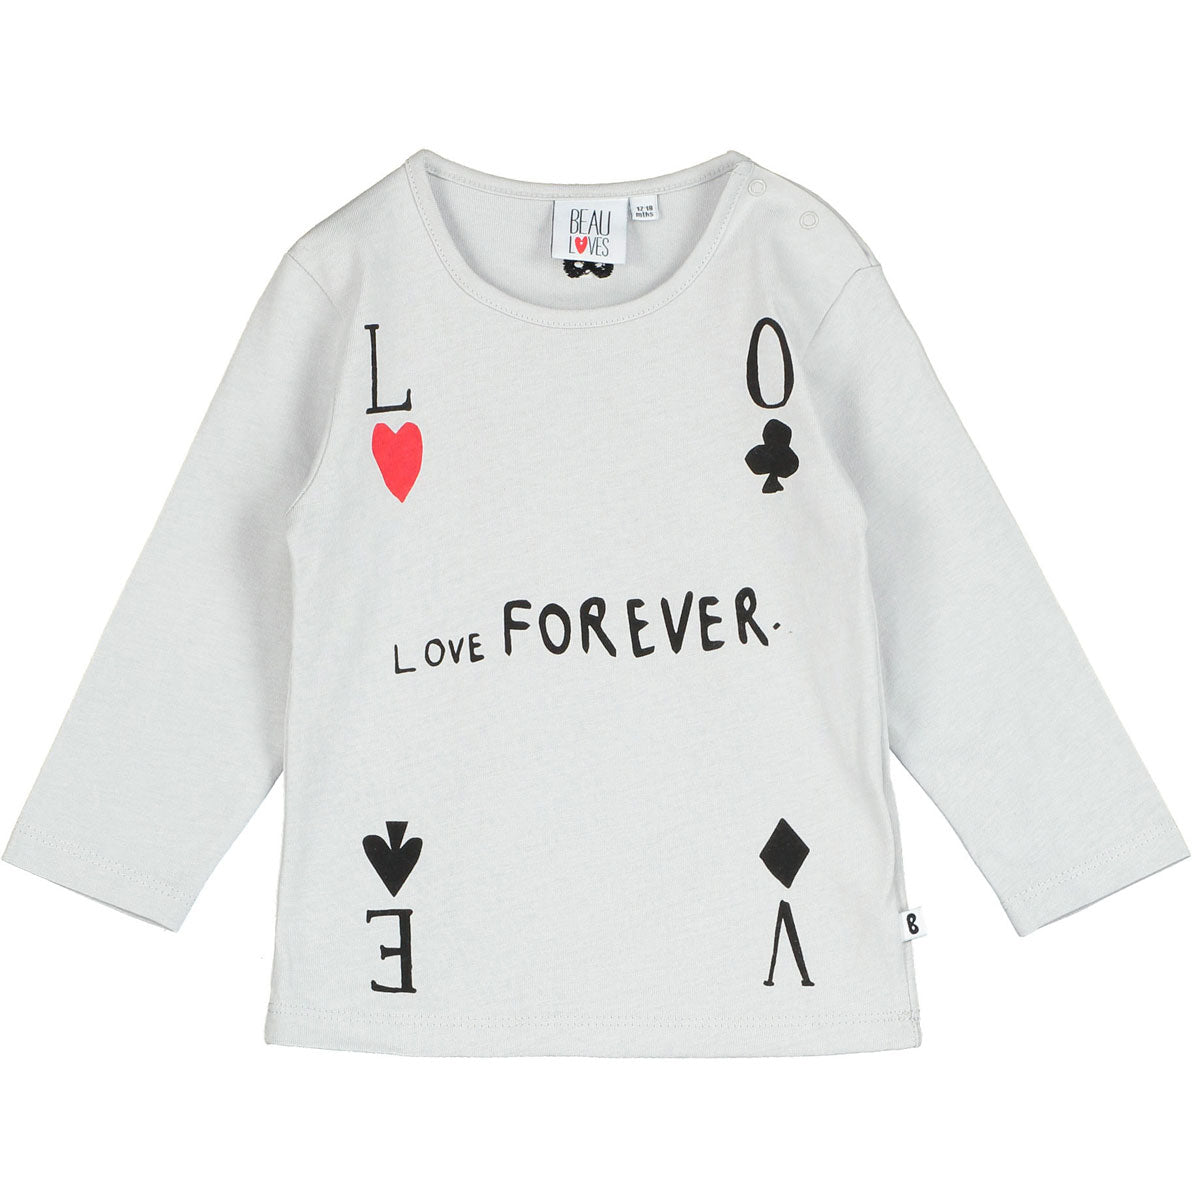 Beau Loves Quiet Grey Love Forever Baby Tee